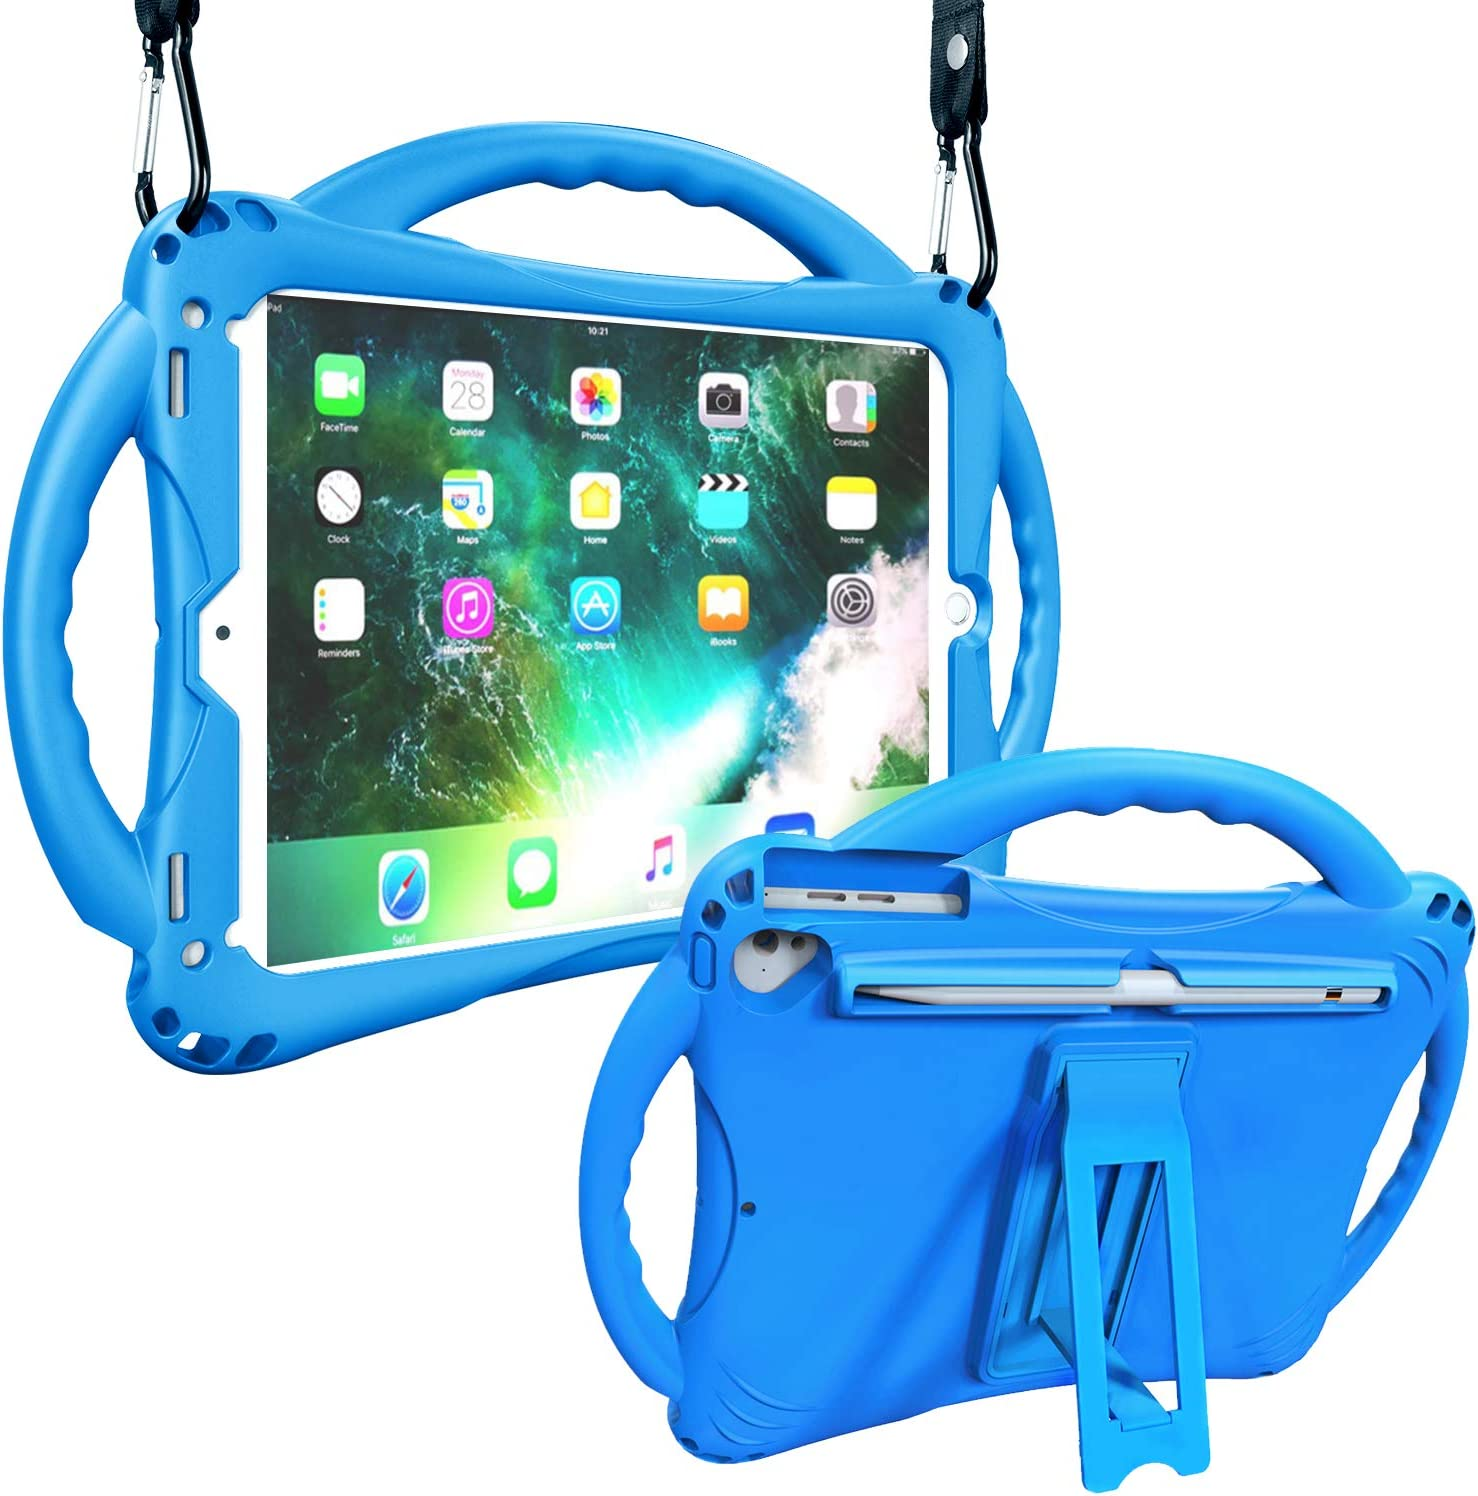 Adocham Kids Case for New iPad 9.7 Inch 5th/6th Gen 2018/2017, iPad Air/ Air 2 and iPad 9.7, Premium Food-Grade Silicone Lightweight Shockproof Handle Stand Kids Friendly Cover (Blue)